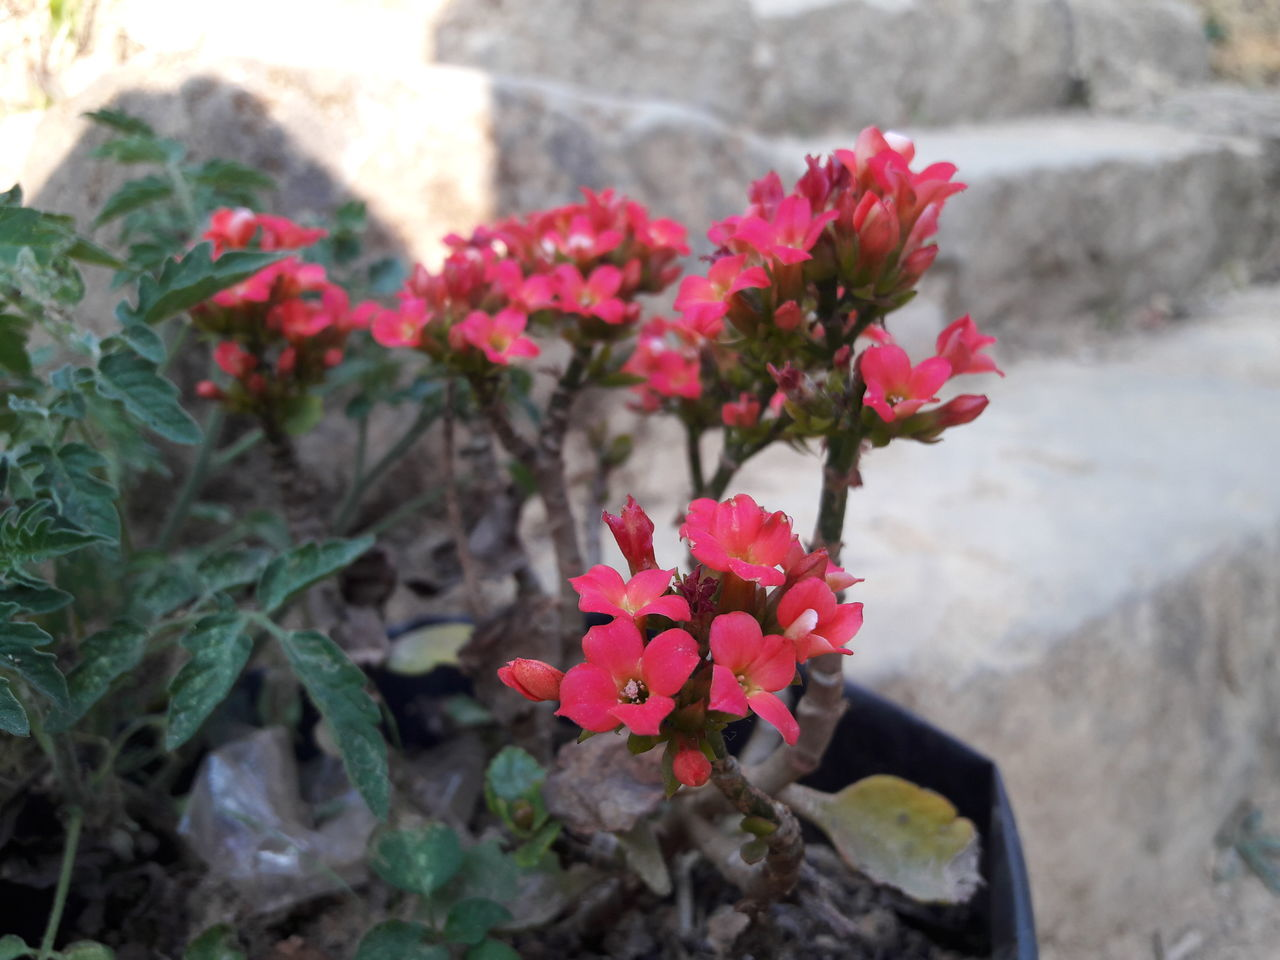 Flower Red Nature Outdoors Beauty In Nature Close-up First Eyeem Photo Kalanchoe Kalanchoe Flower EyeEmNewHere